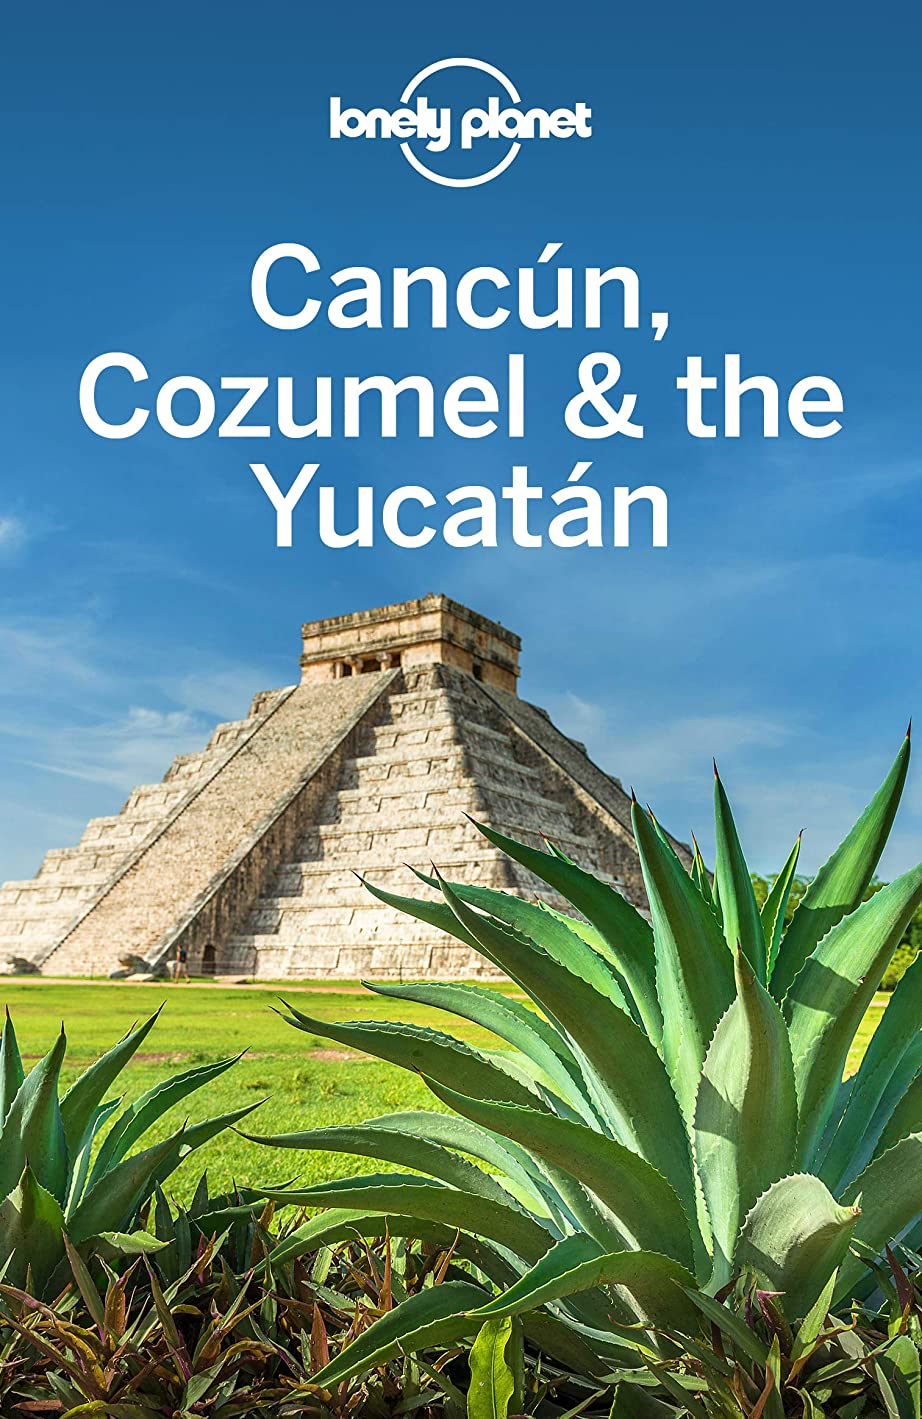 借りるレンジ顕著Lonely Planet Cancun, Cozumel & the Yucatan (Travel Guide) (English Edition)